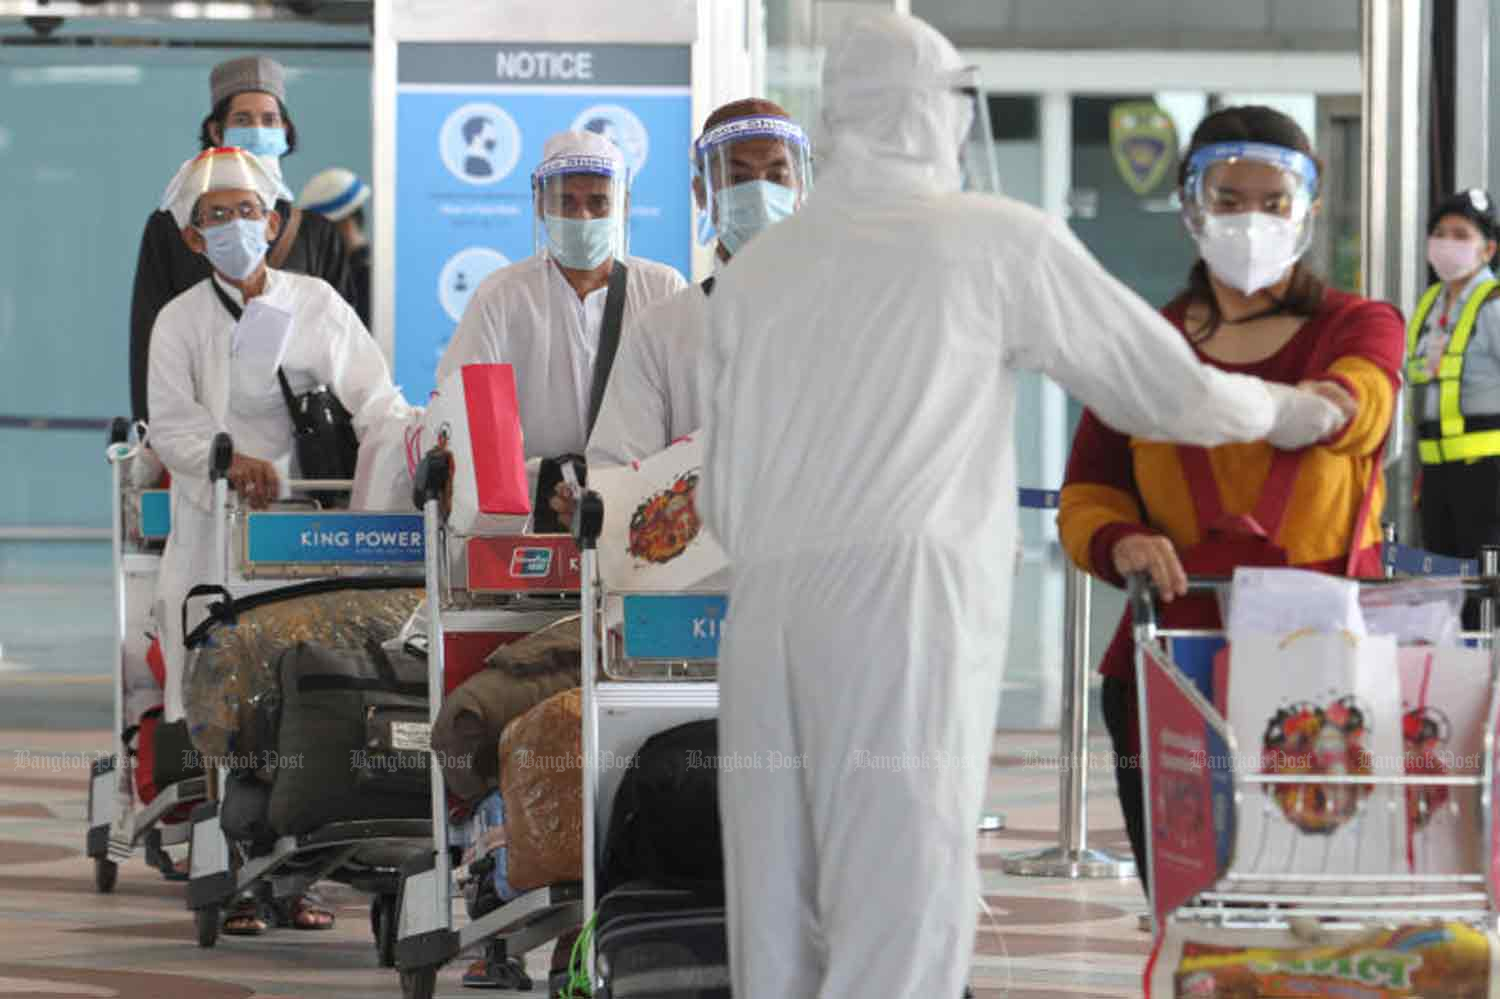 Travellers arrive at Suvarnabhumi Airport in Samut Prakan province and will be quarantined right away. Quarantine has been shortened for most arrivals from April 1 (File photo)